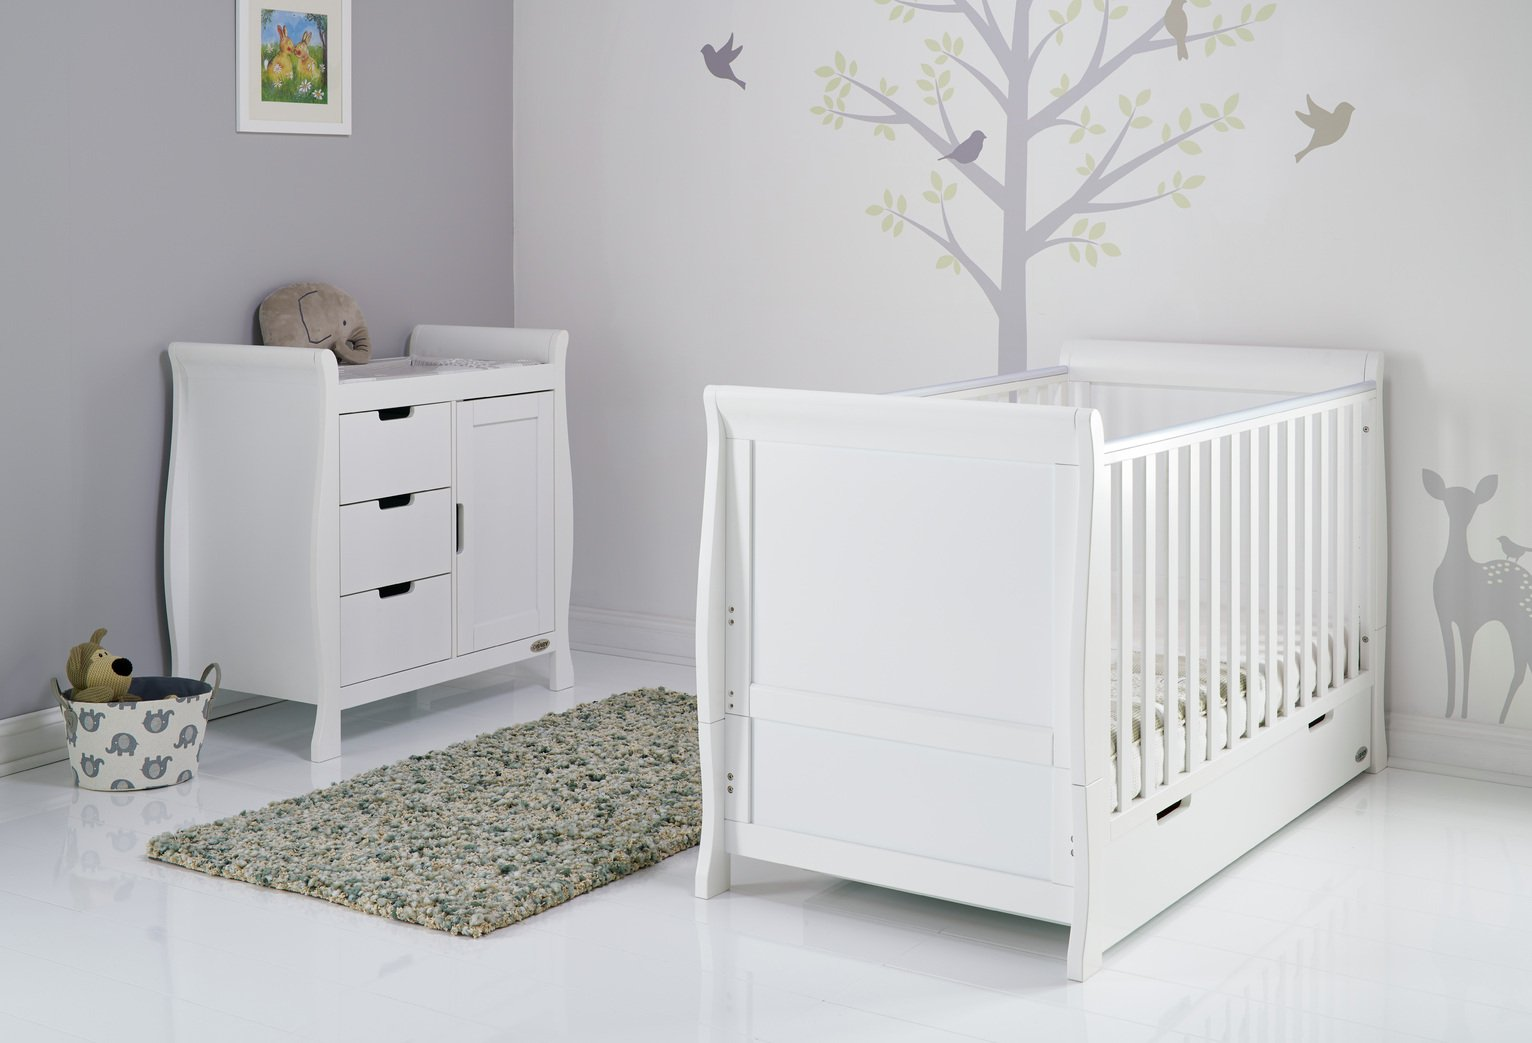 Image of Obaby Stamford Sleigh 2 Piece Room Set - White